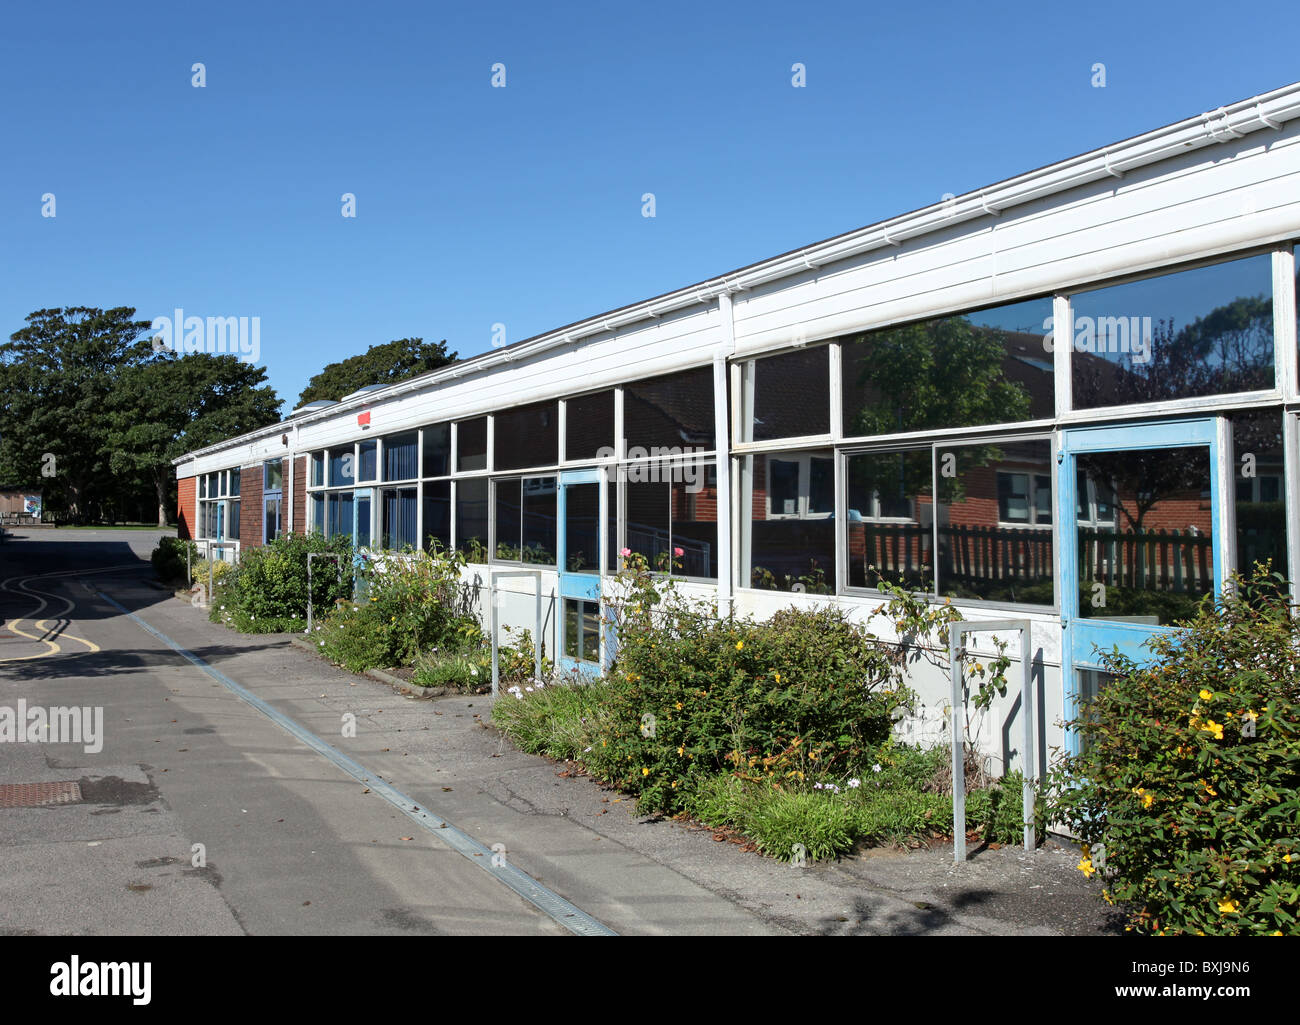 UK Primary School classroom exterior, typically for children aged 5 to 10 years. - Stock Image